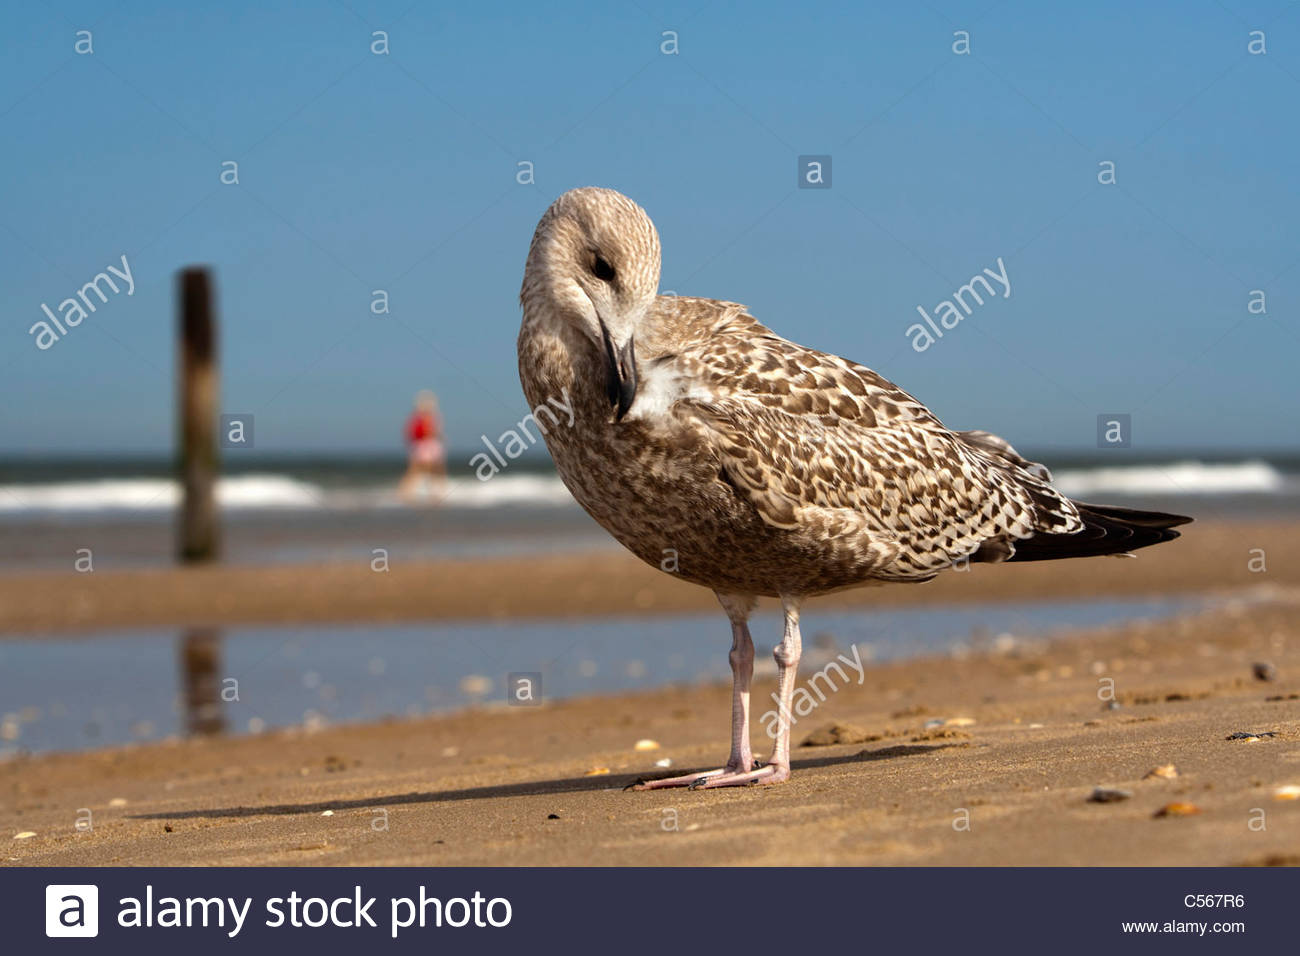 The Netherlands, Zandvoort, Seagull on beach. - Stock Image